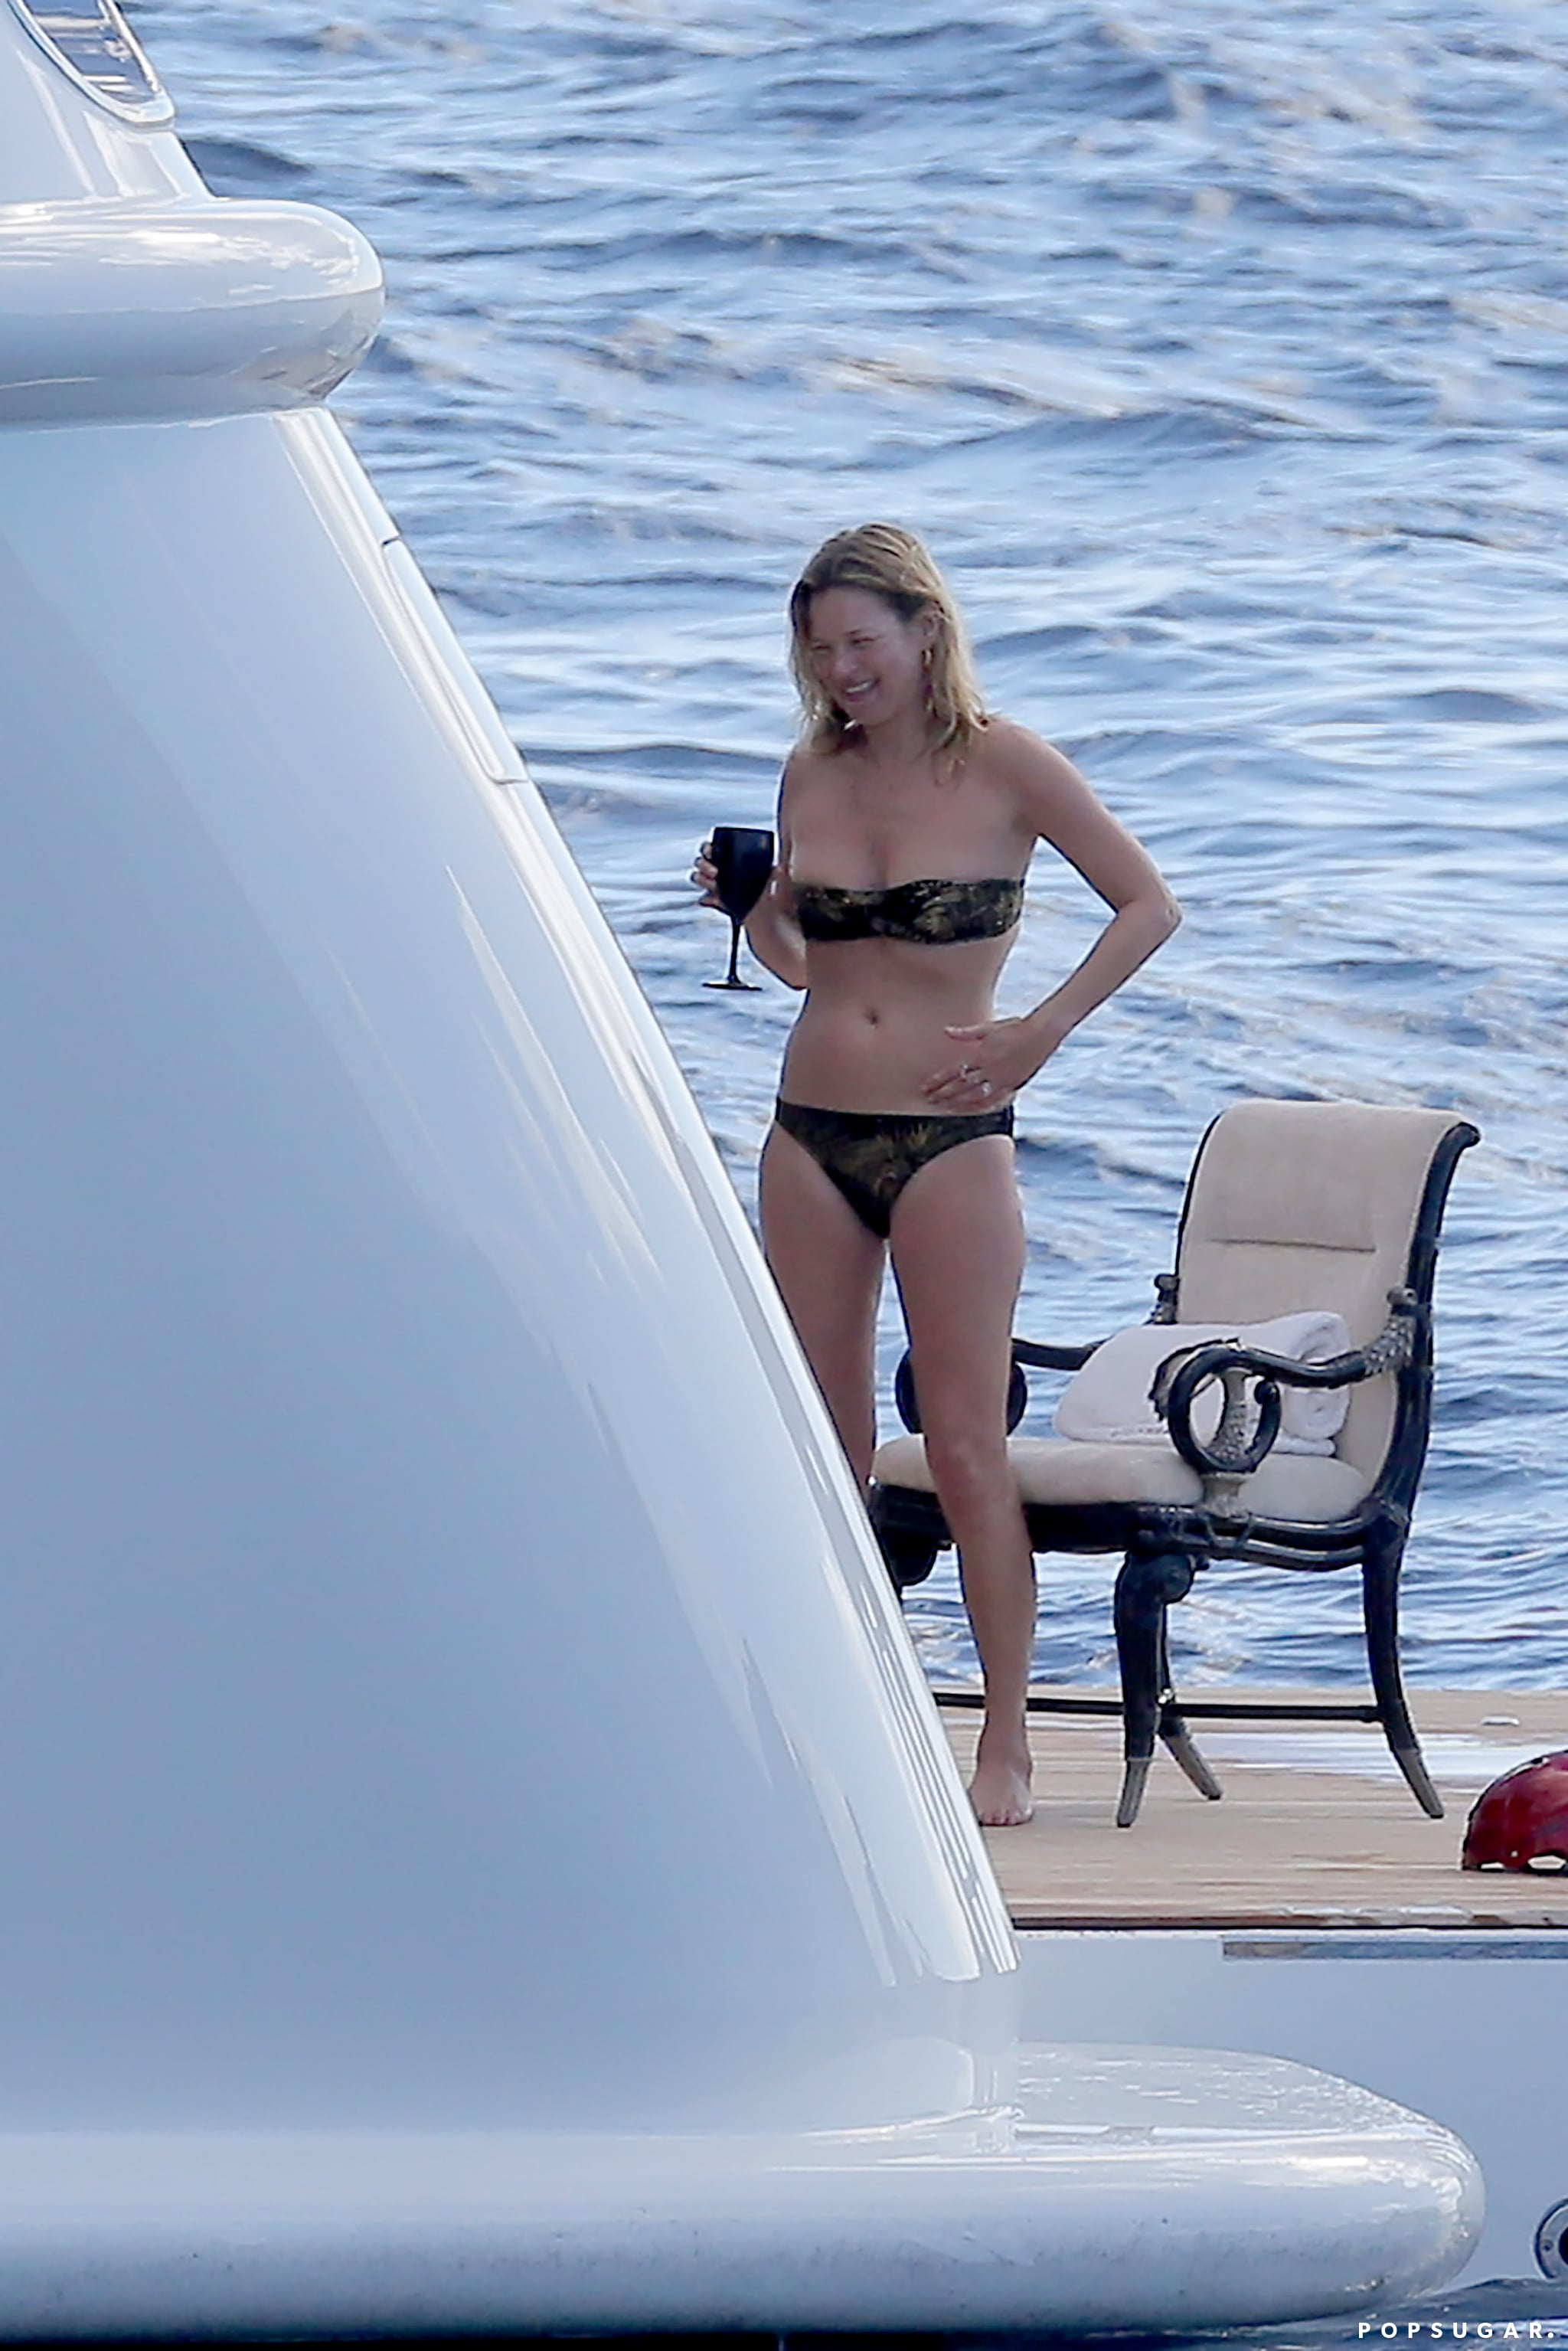 Bikini-Clad Kate Moss Is Having a Ball in St. Barts